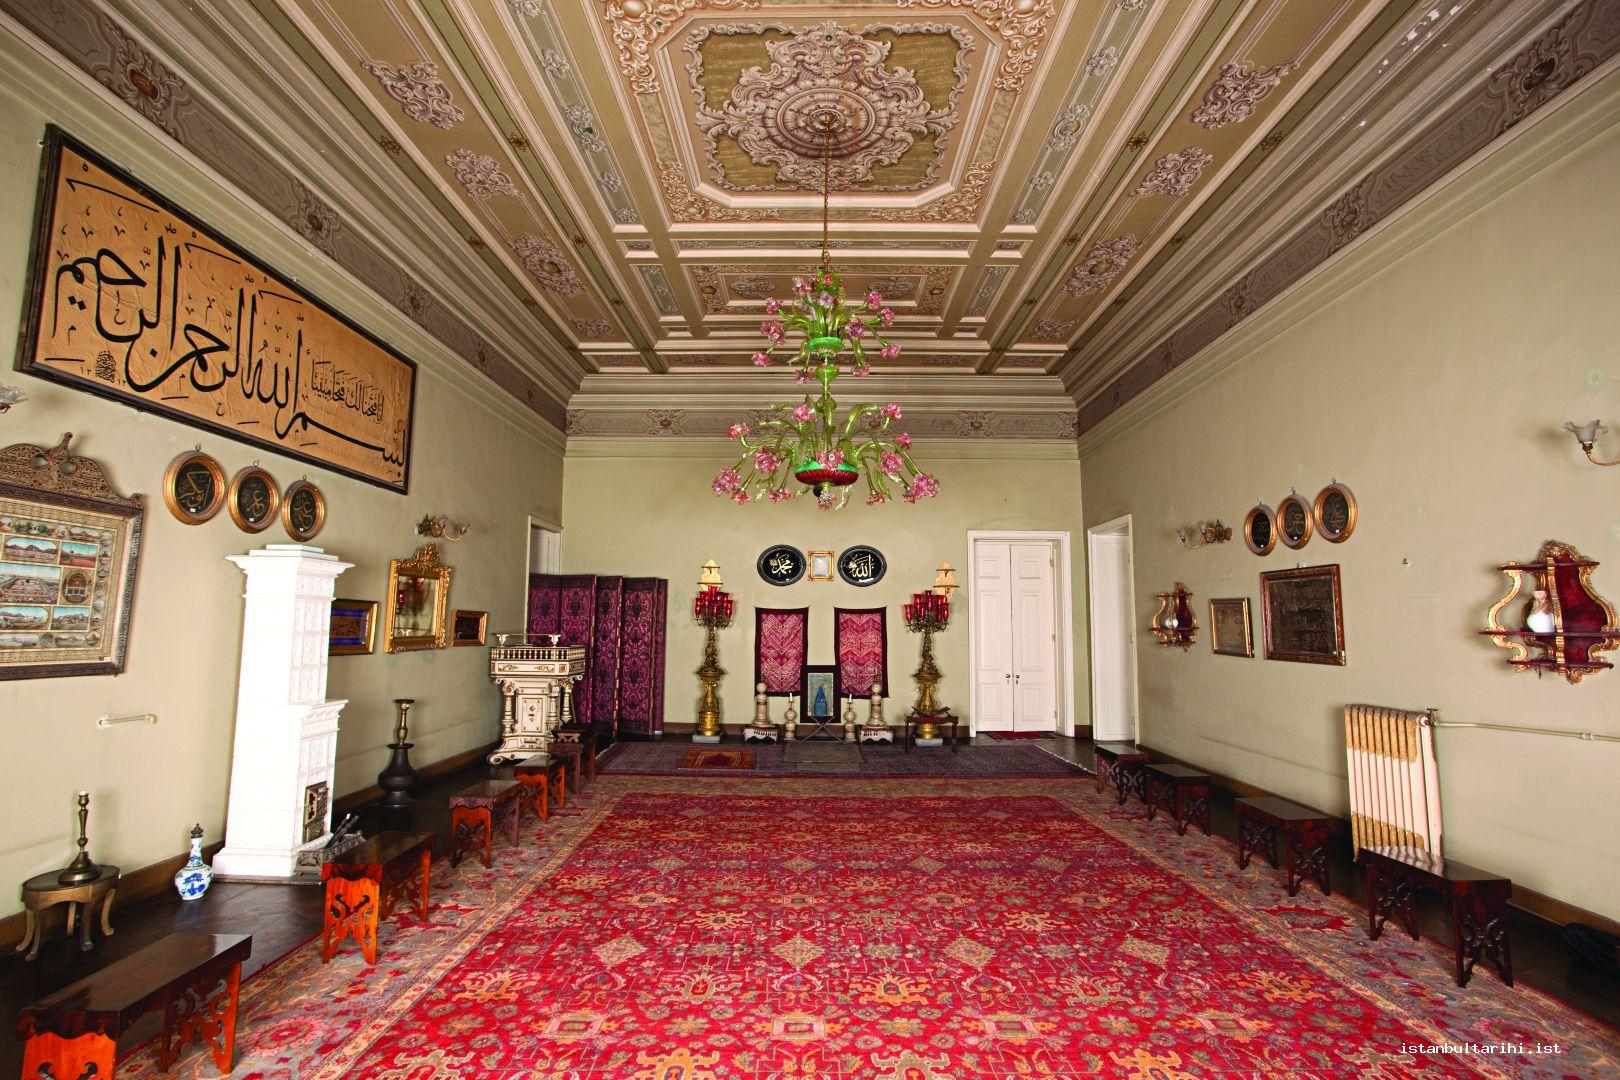 8- The sultan's prayer room in Dolmabahçe Palace